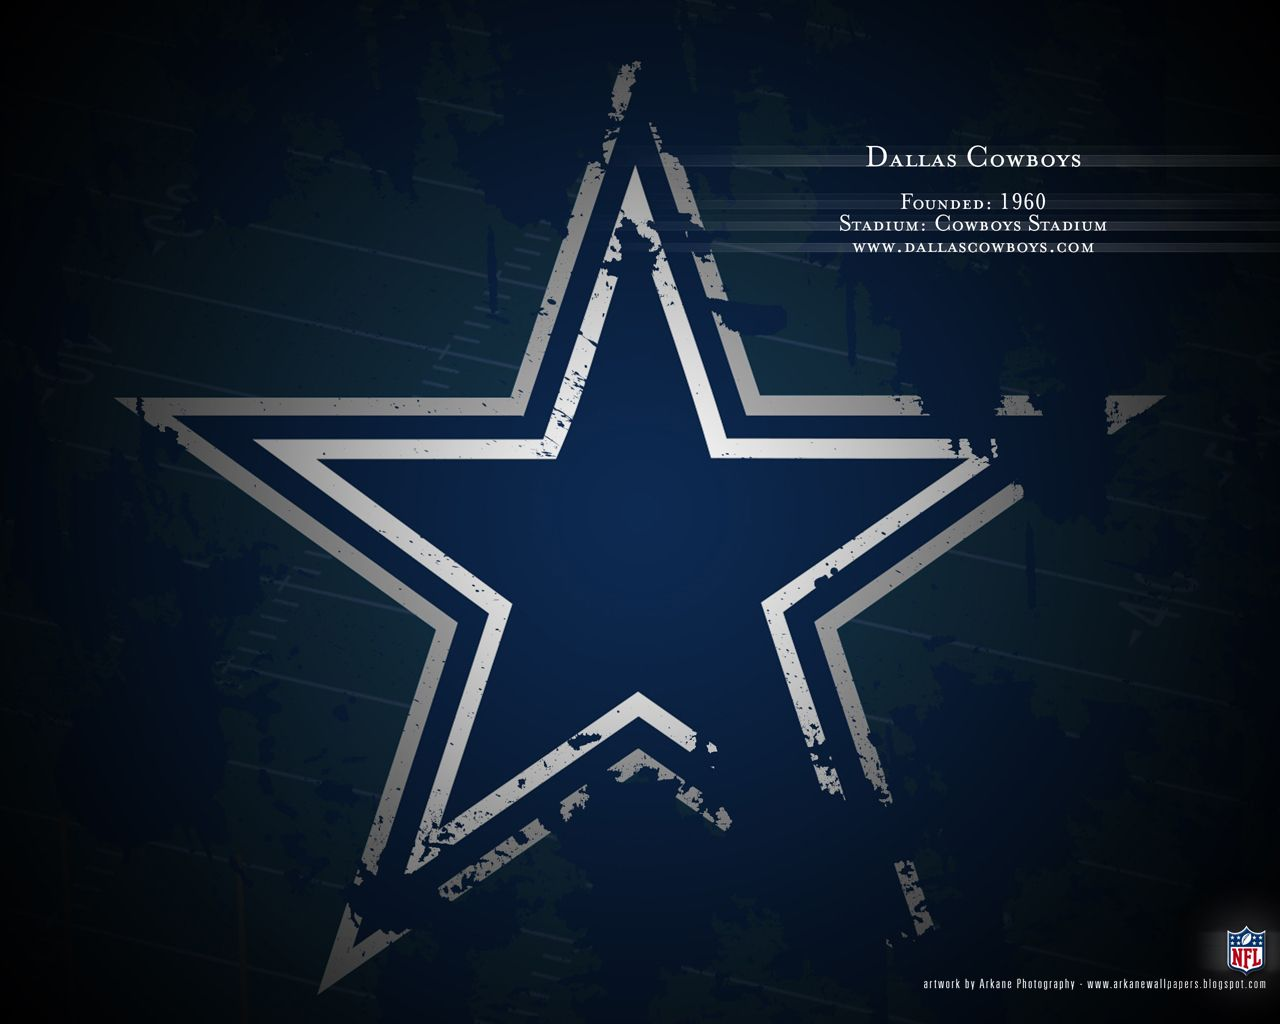 Dallas Cowboys Live Football Wallpaper Free Download Downloads